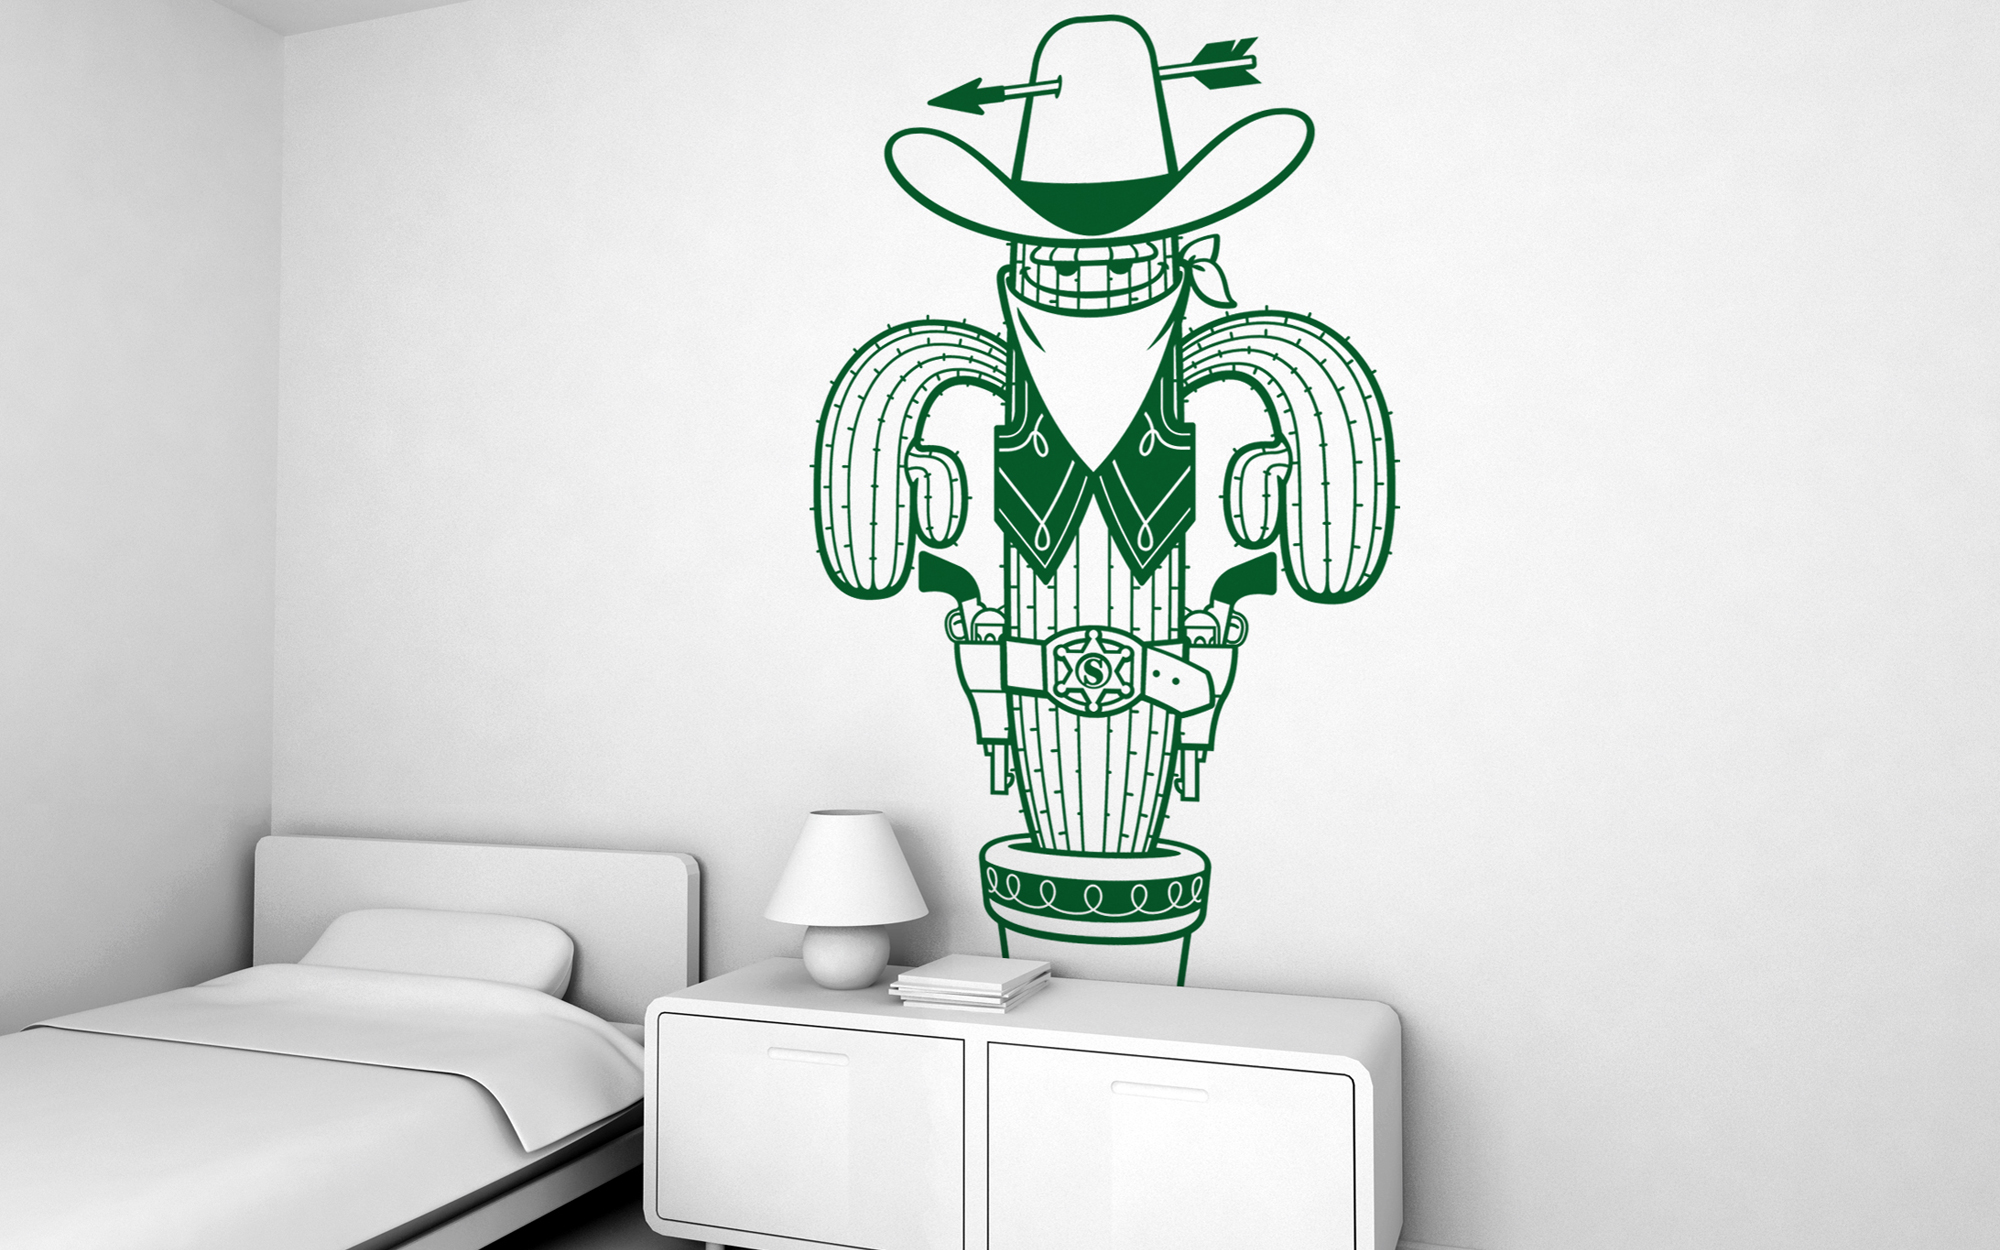 giant kids wall decals by e glue studio at coroflot com sheriff cactus giant wall sticker for baby nursery or kids room